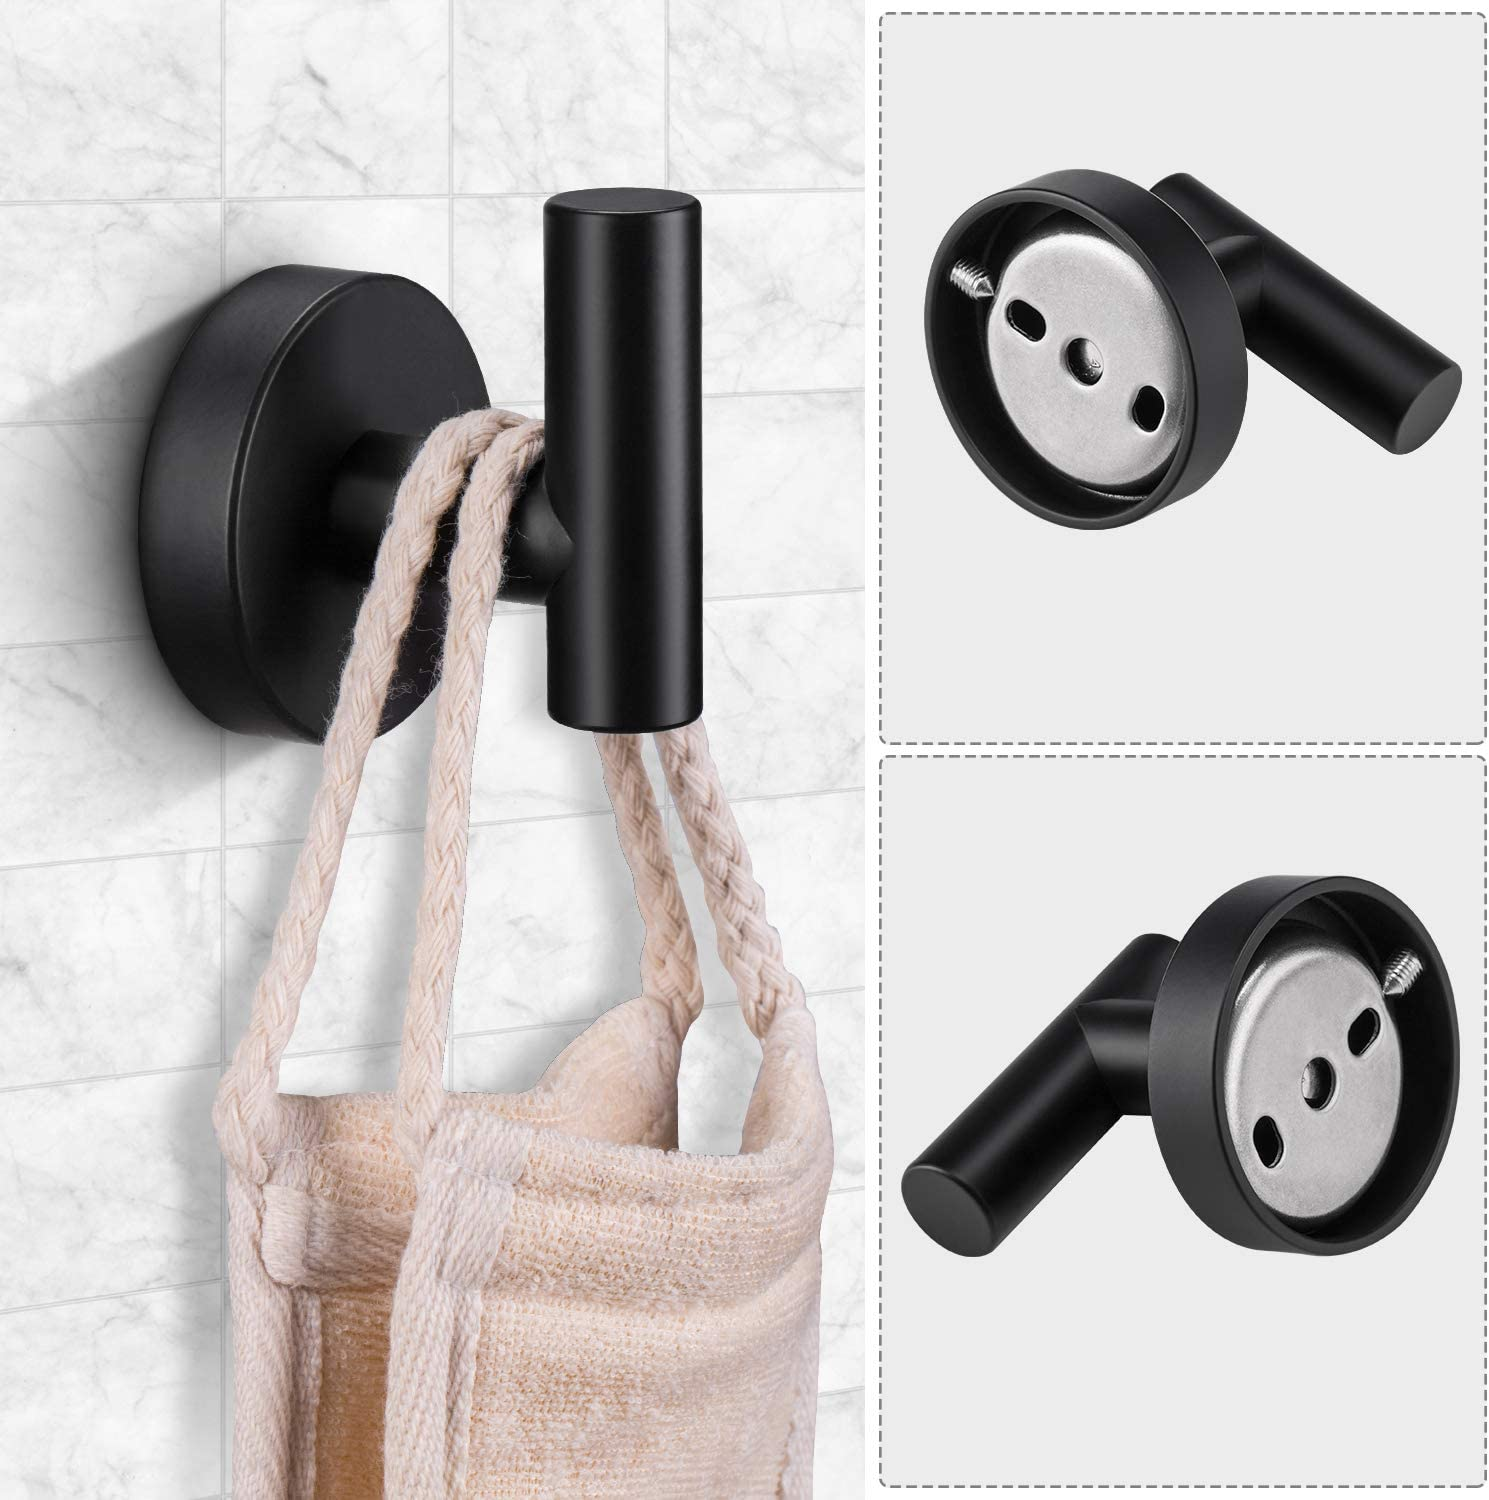 Pynsseu 304 Stainless Steel Bathroom Hardware Accessories Set Matte Black 3-Piece Set Includes Hand Towel Ring, Robe Towel Hook, Toilet Paper Holder Heavy Duty Wall Mount Bathroom Holder: Home & Kitchen